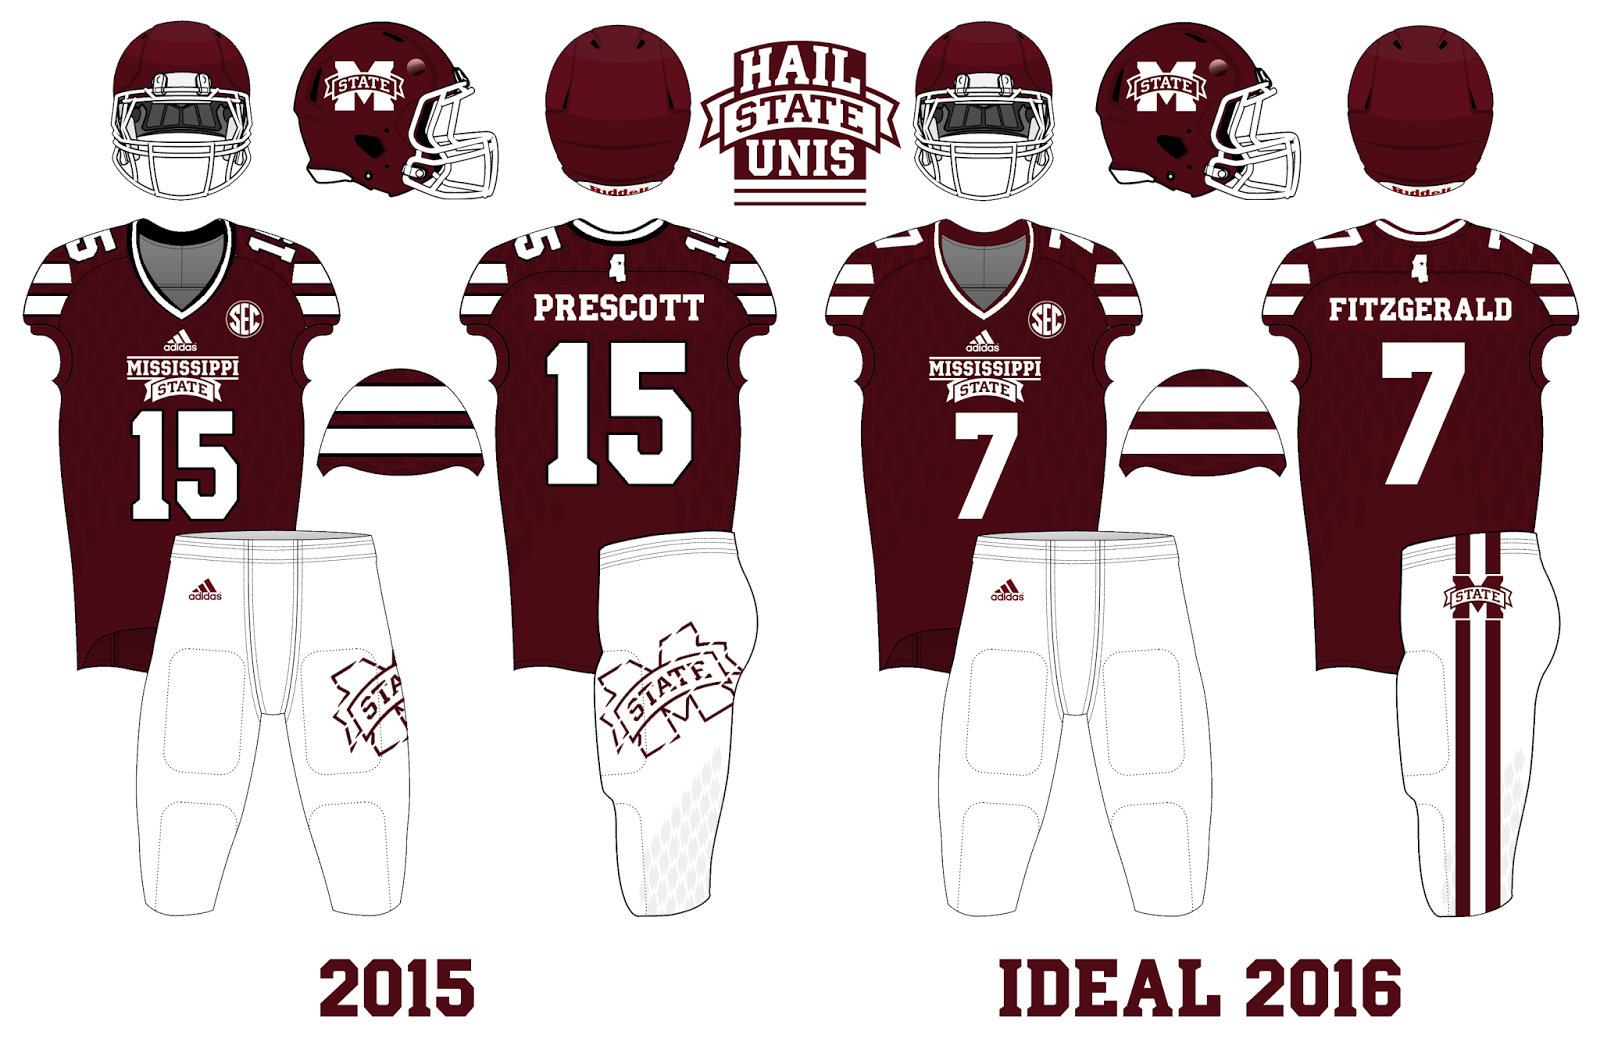 6f5c052bf01 The first change that needs to be made to the Bulldogs' uniforms is to  remove the black outlines from the collar, numbers, and stripes.